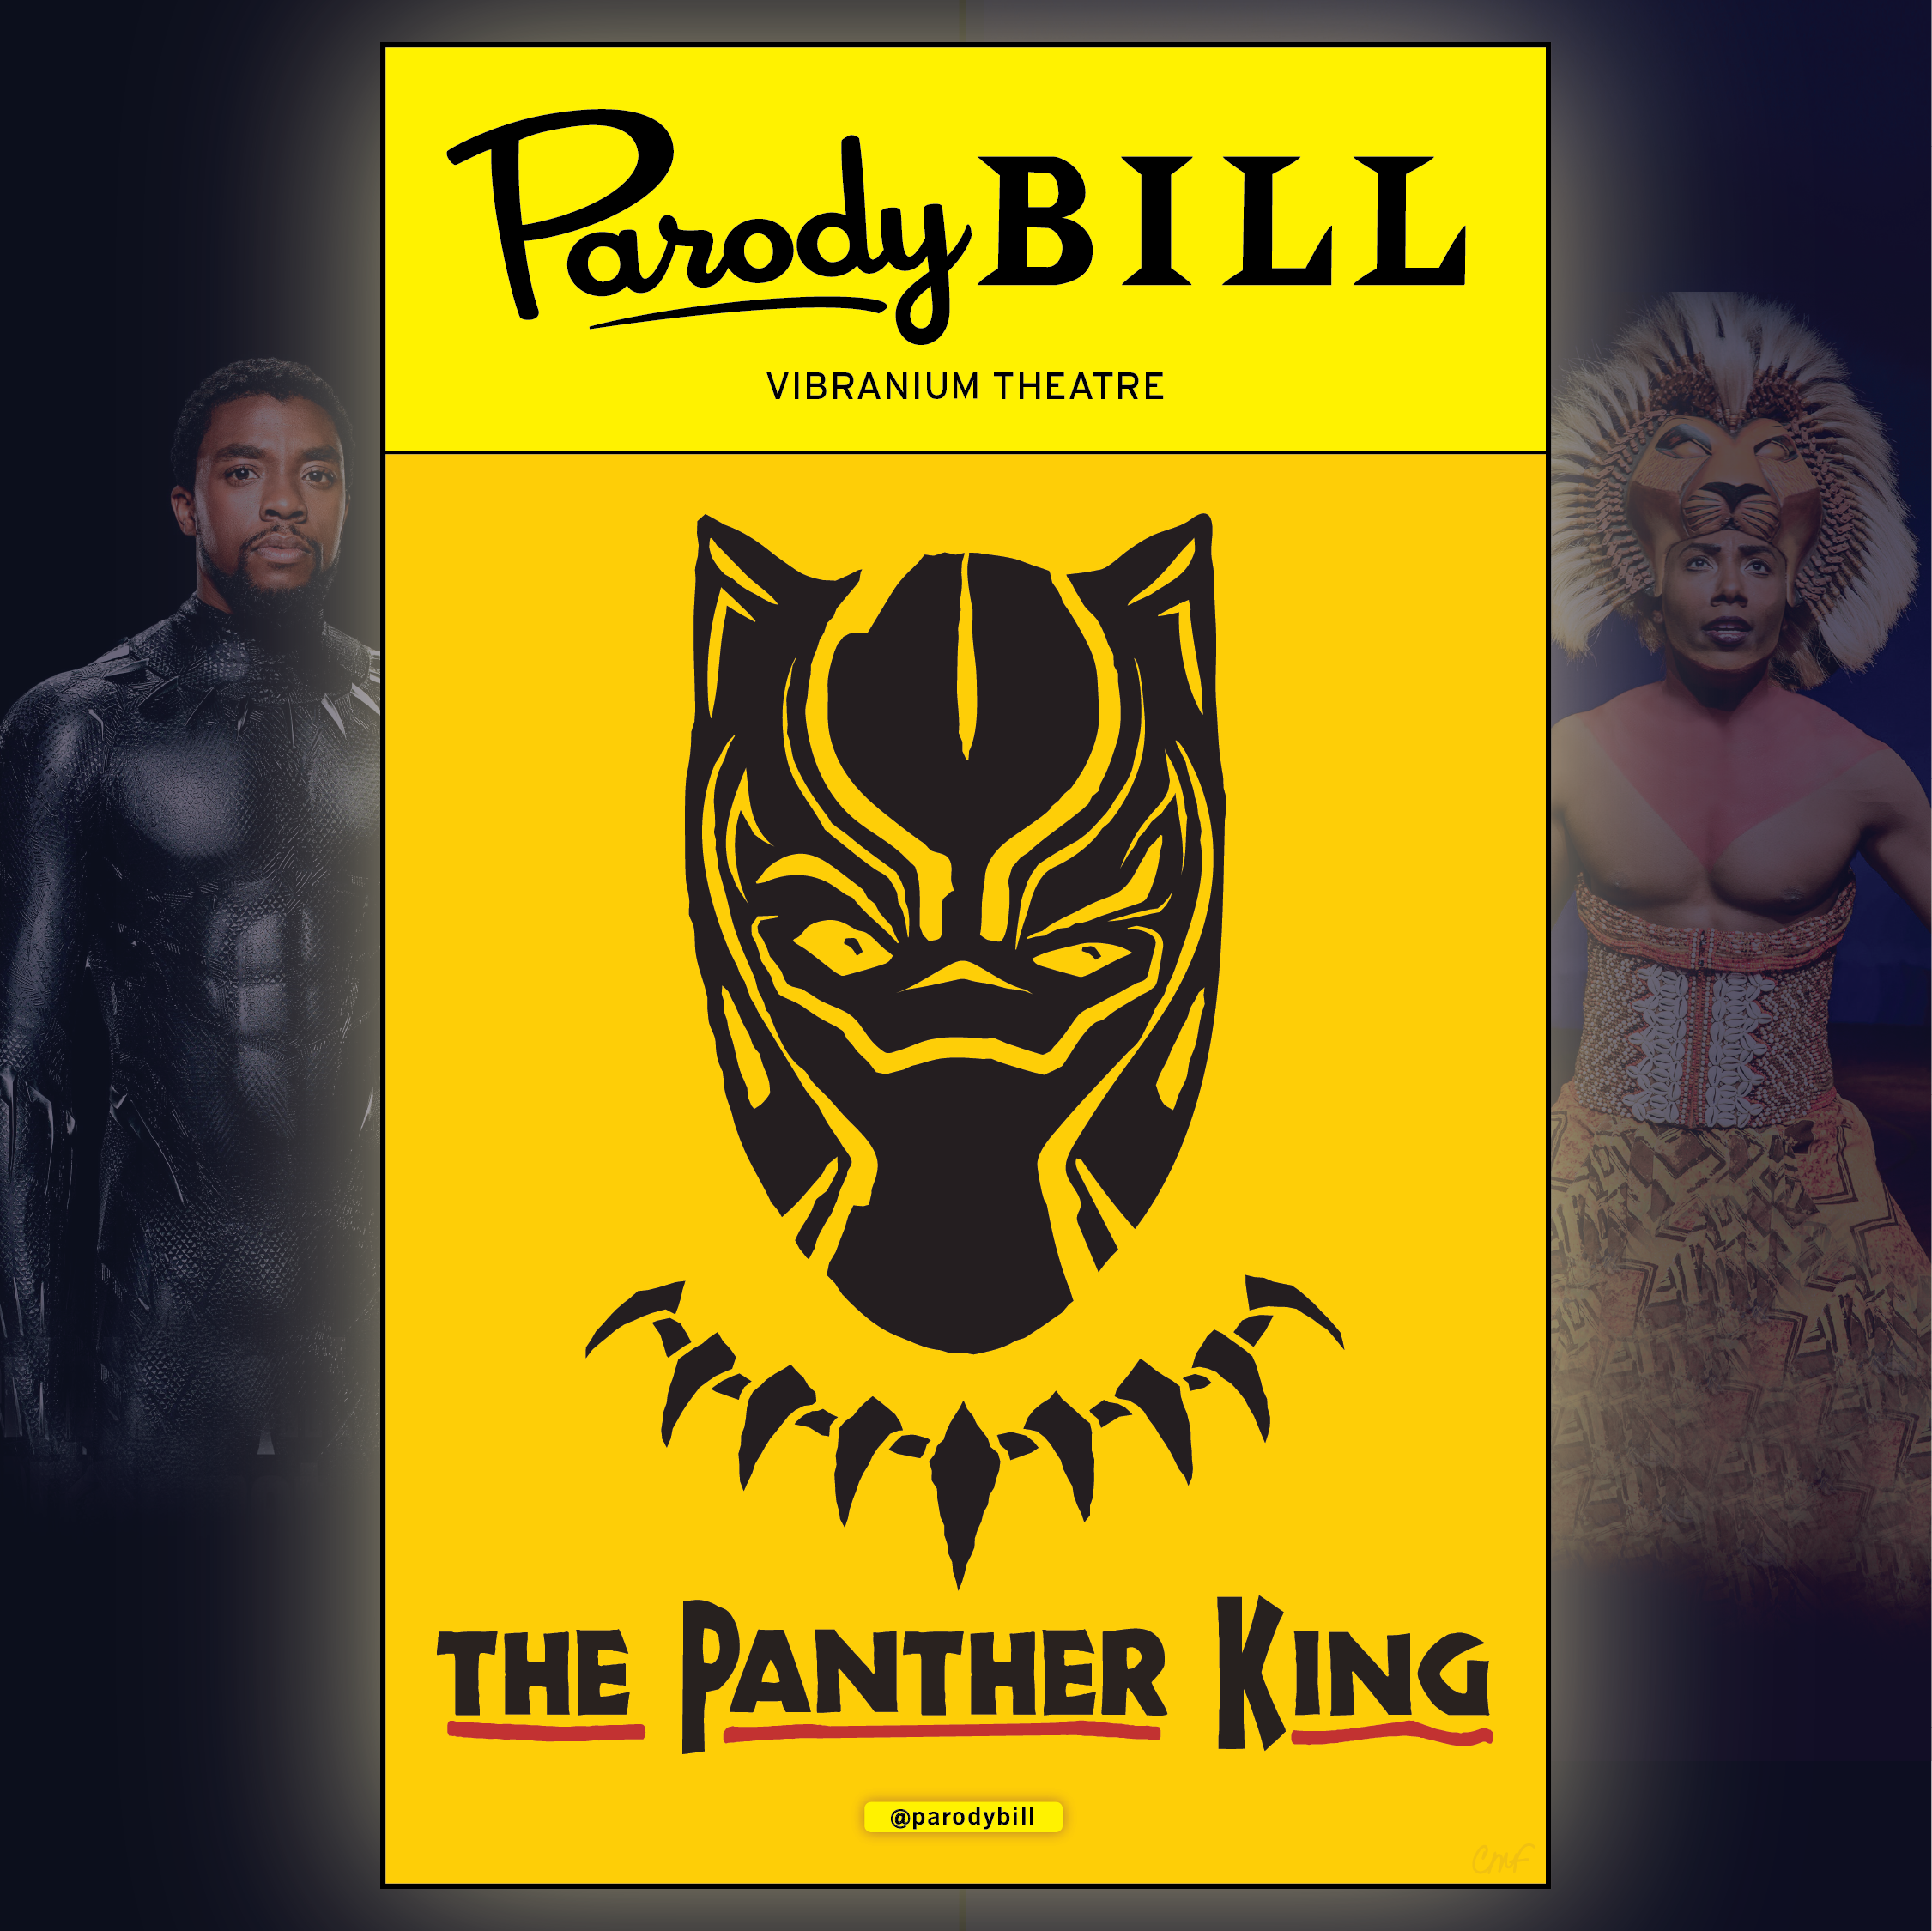 THE PANTHER KING